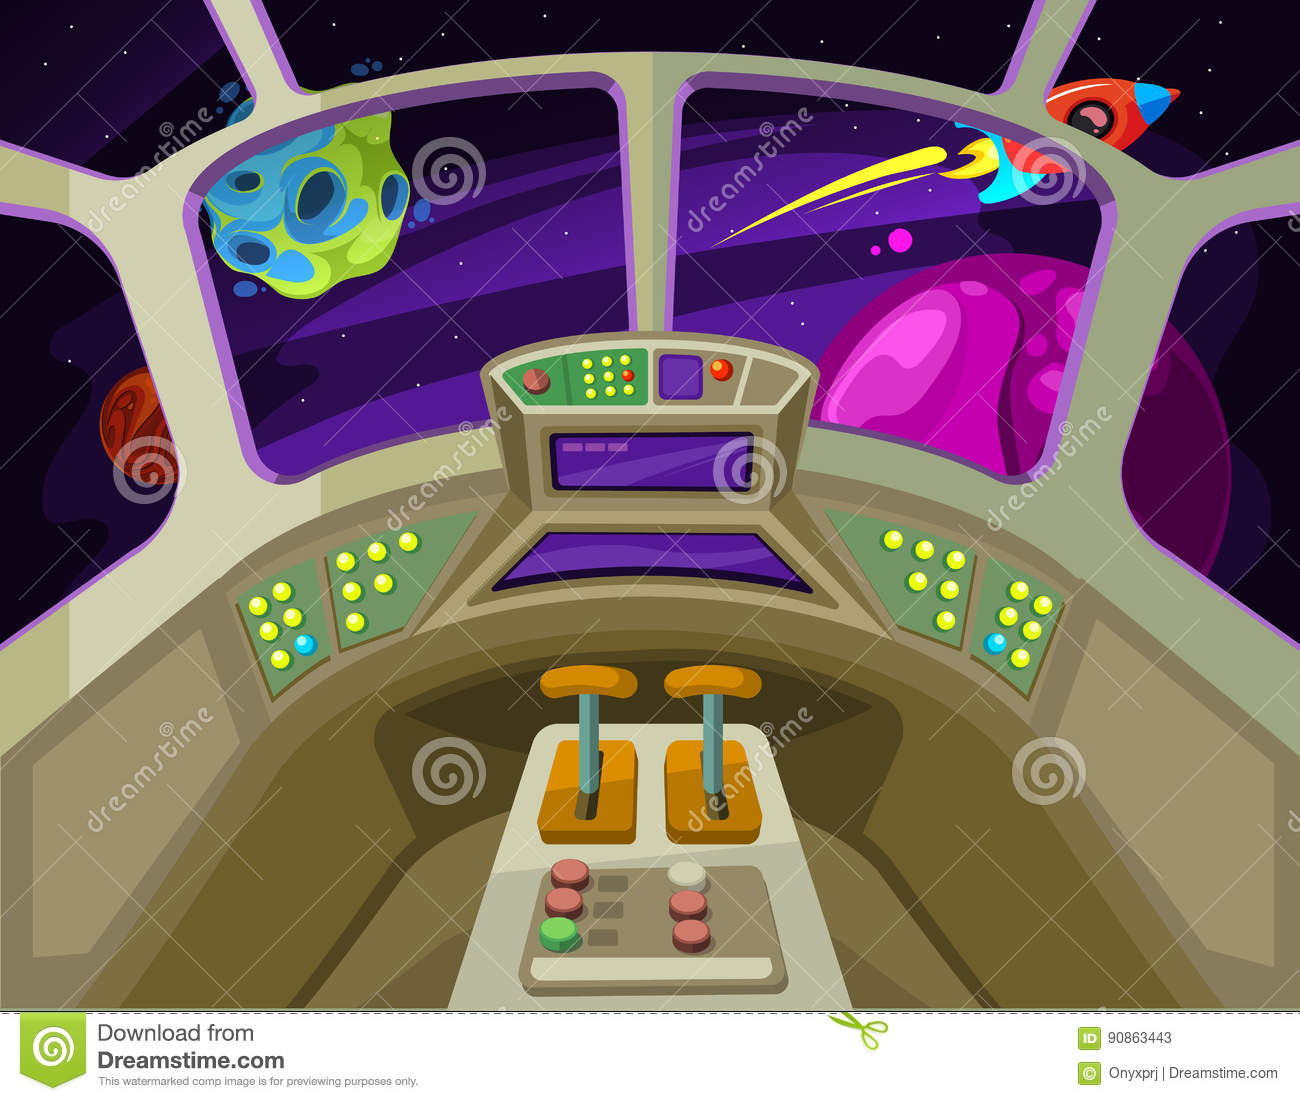 cartoon spaceship cabin interior with windows into space with alien planets vector illustration. Black Bedroom Furniture Sets. Home Design Ideas